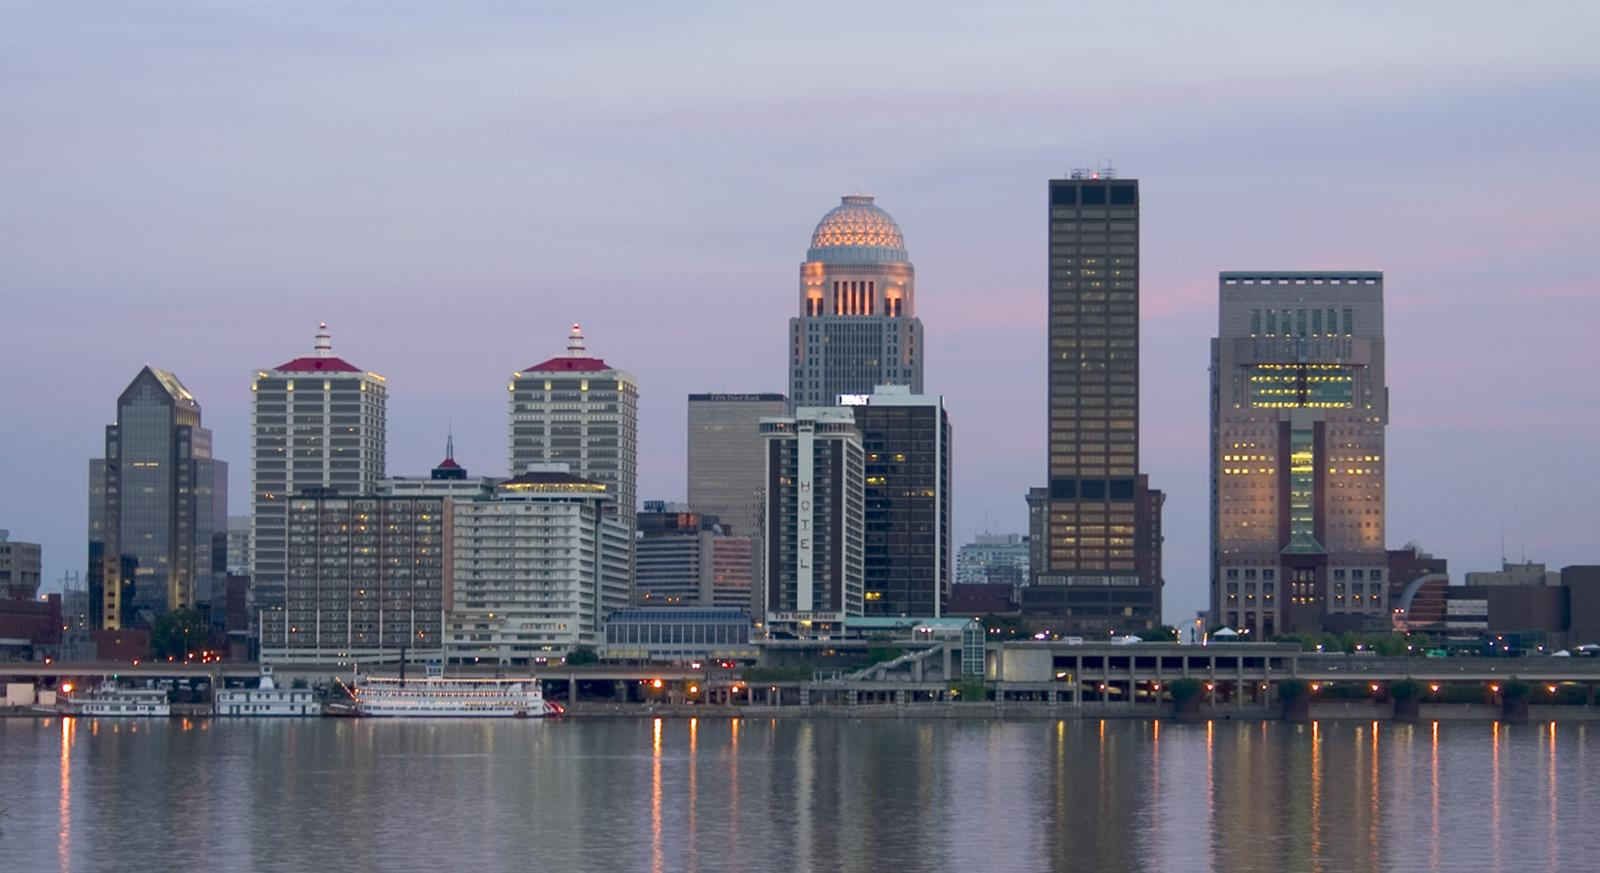 Louisville Provides Student Groups with Plenty to See and Do